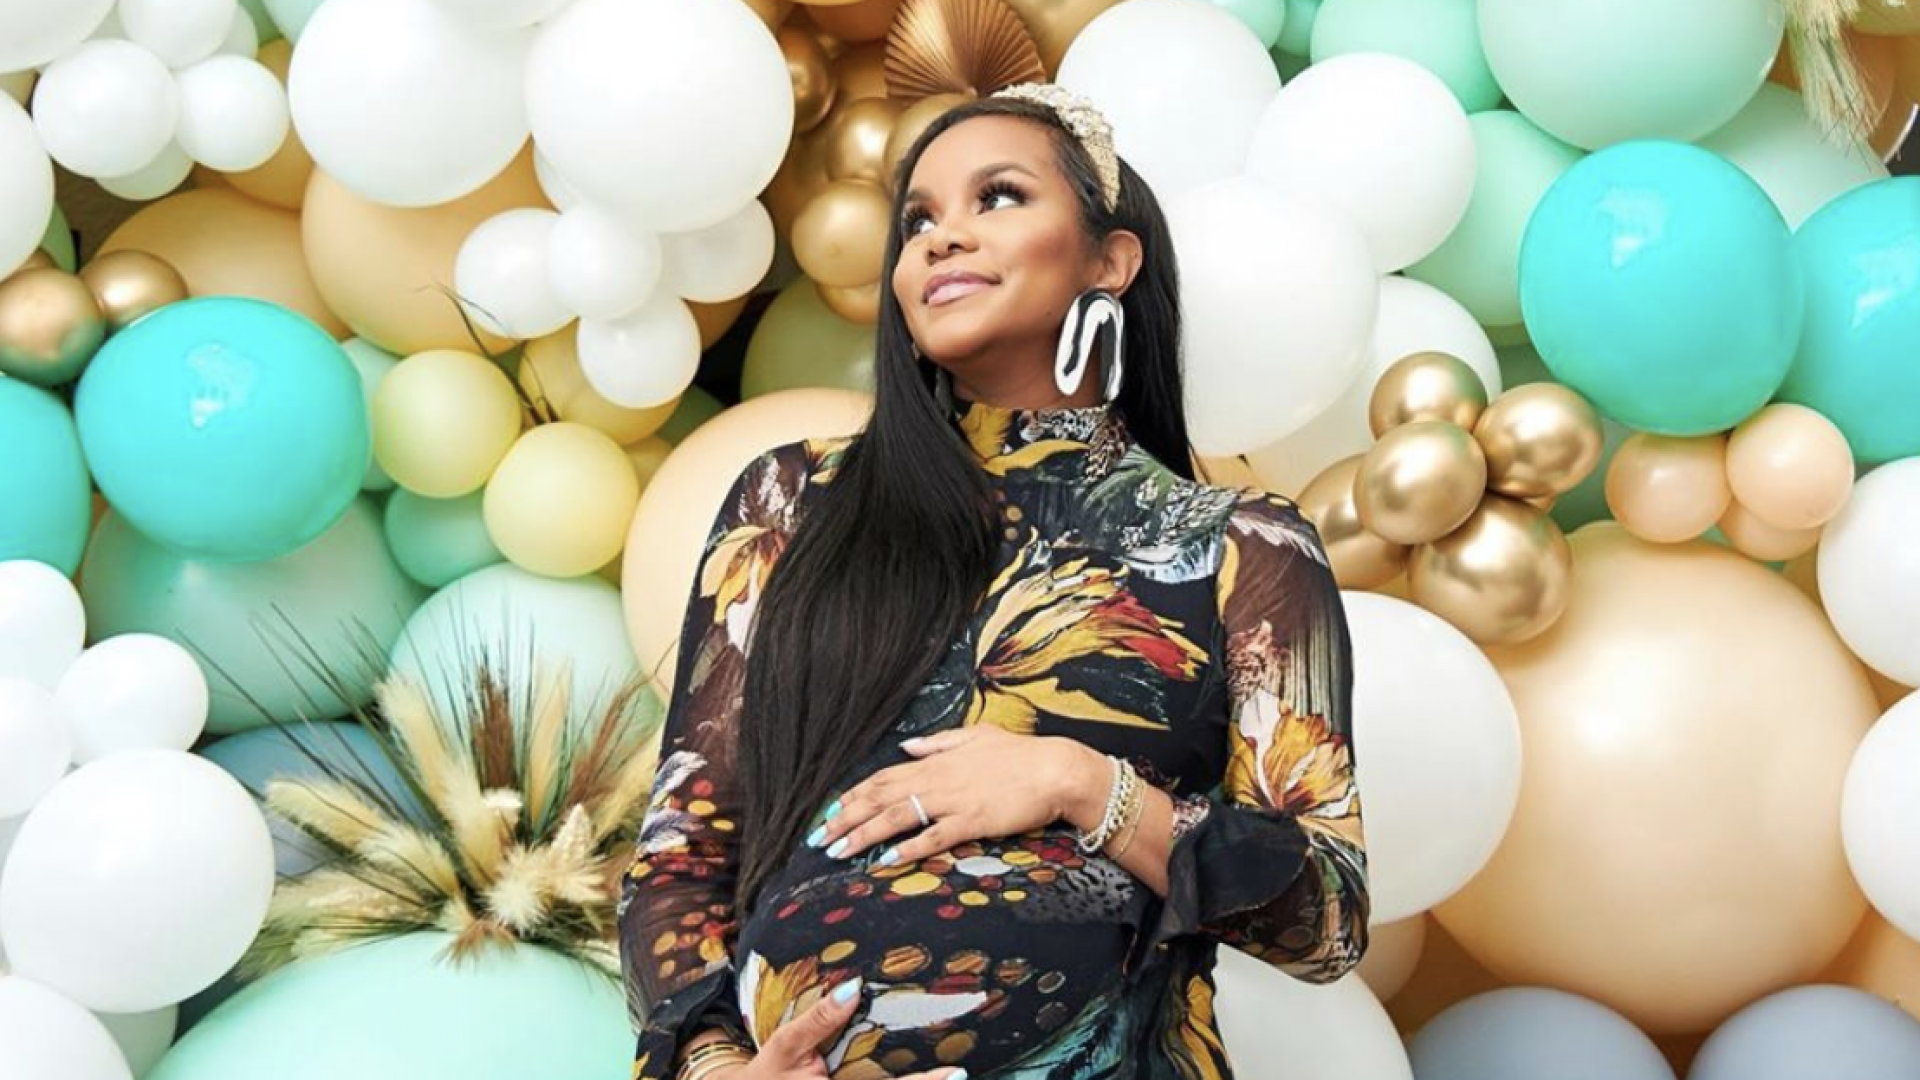 LeToya Luckett Hosts Virtual Baby Shower Due To Covid-19 Pandemic